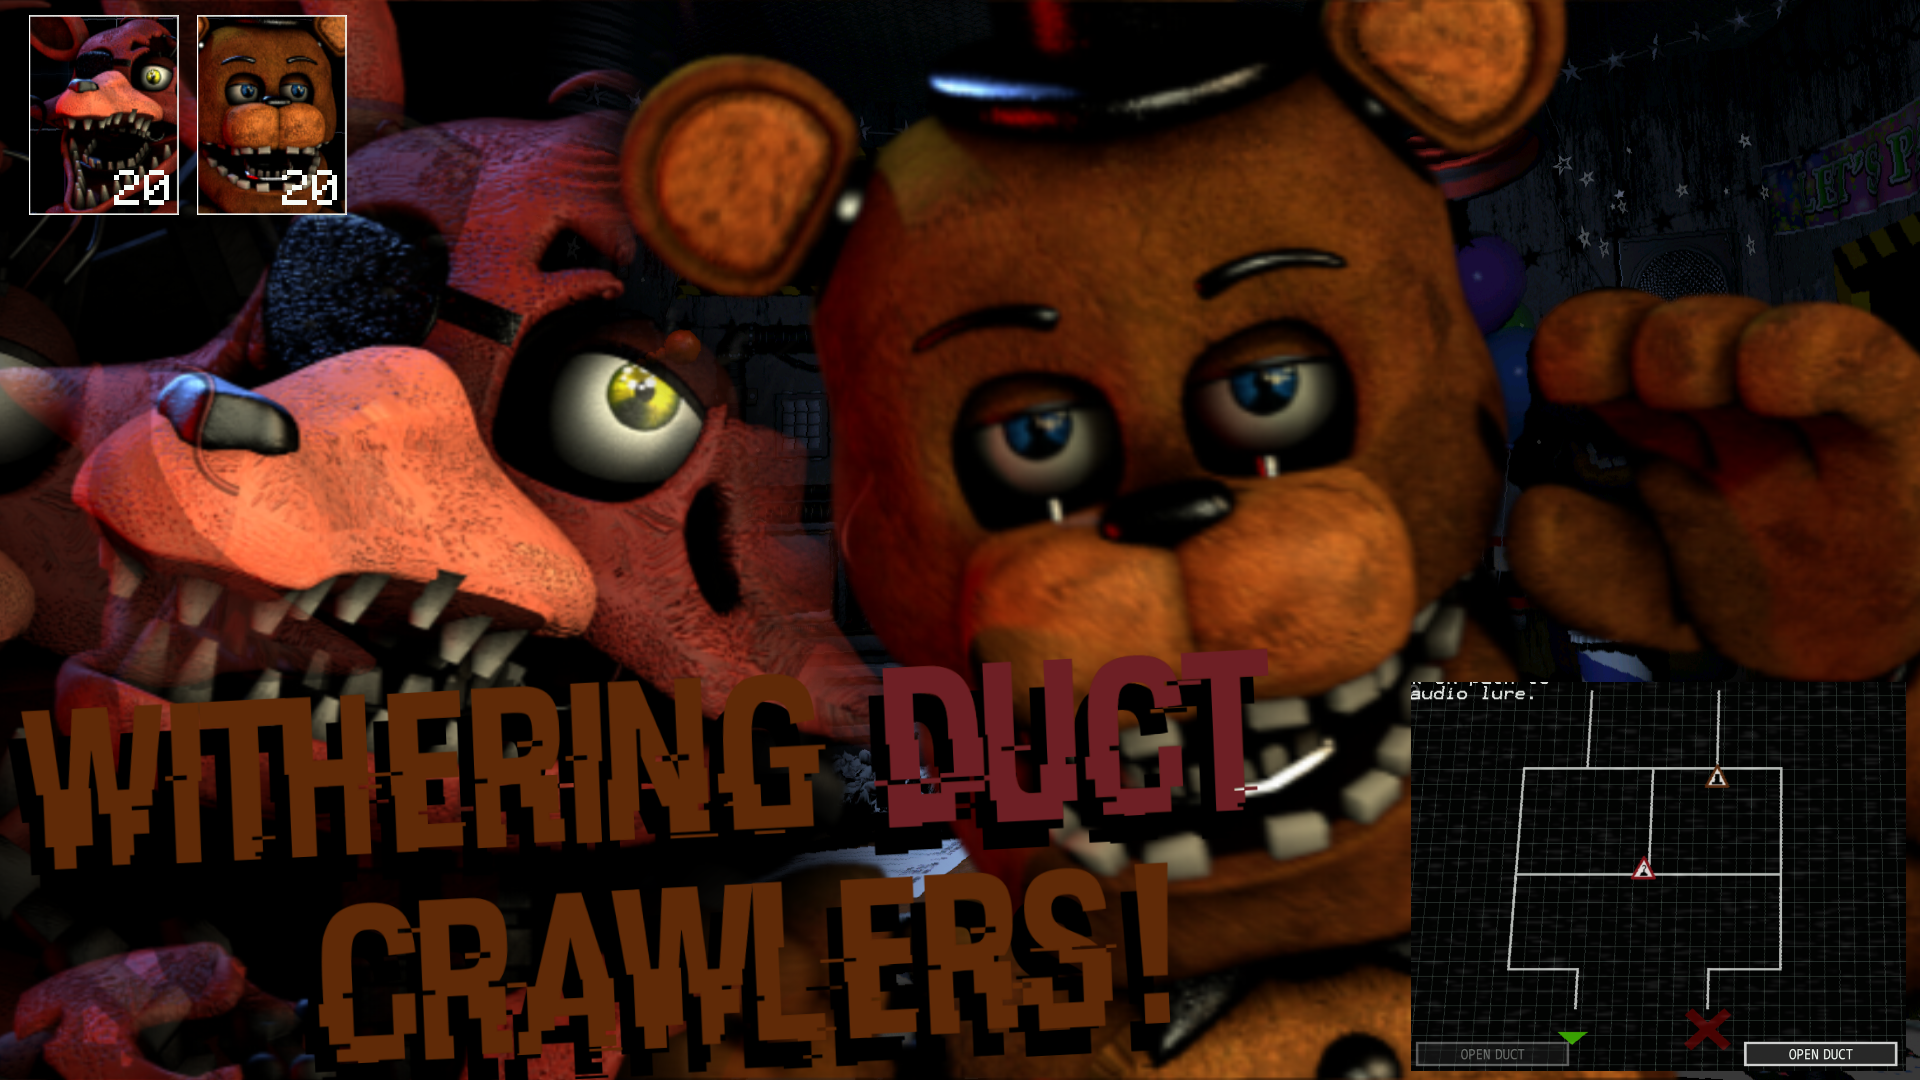 [FNaF Mod] Withering Duct Crawlers Pack! (UCN)